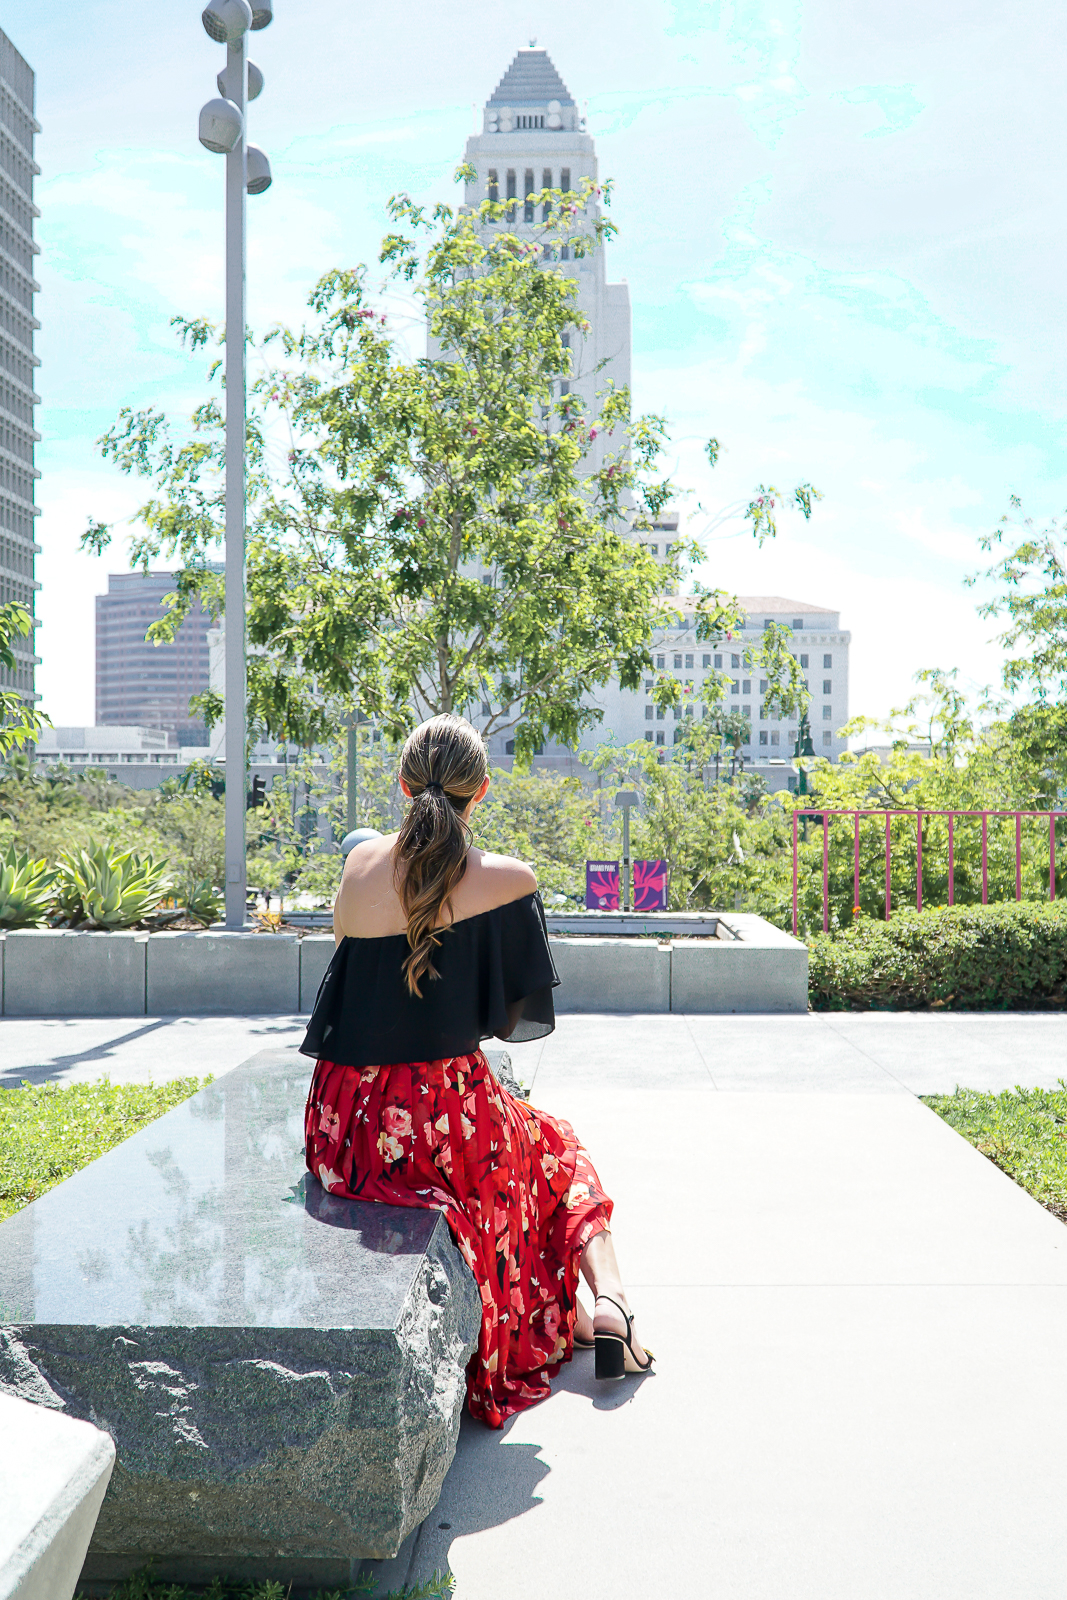 H&M Red Floral Midi Skirt, Red Floral Midi Skirt, Red H&M Skirt, Black Gucci Marmont Sandals, Black Gucci Suede GG Logo Sandals, Black Suede Marmont Sandals, Gucci Marmont 75mm black Suede Sandals, Downtown Los Angeles Photography, City Hall Photography